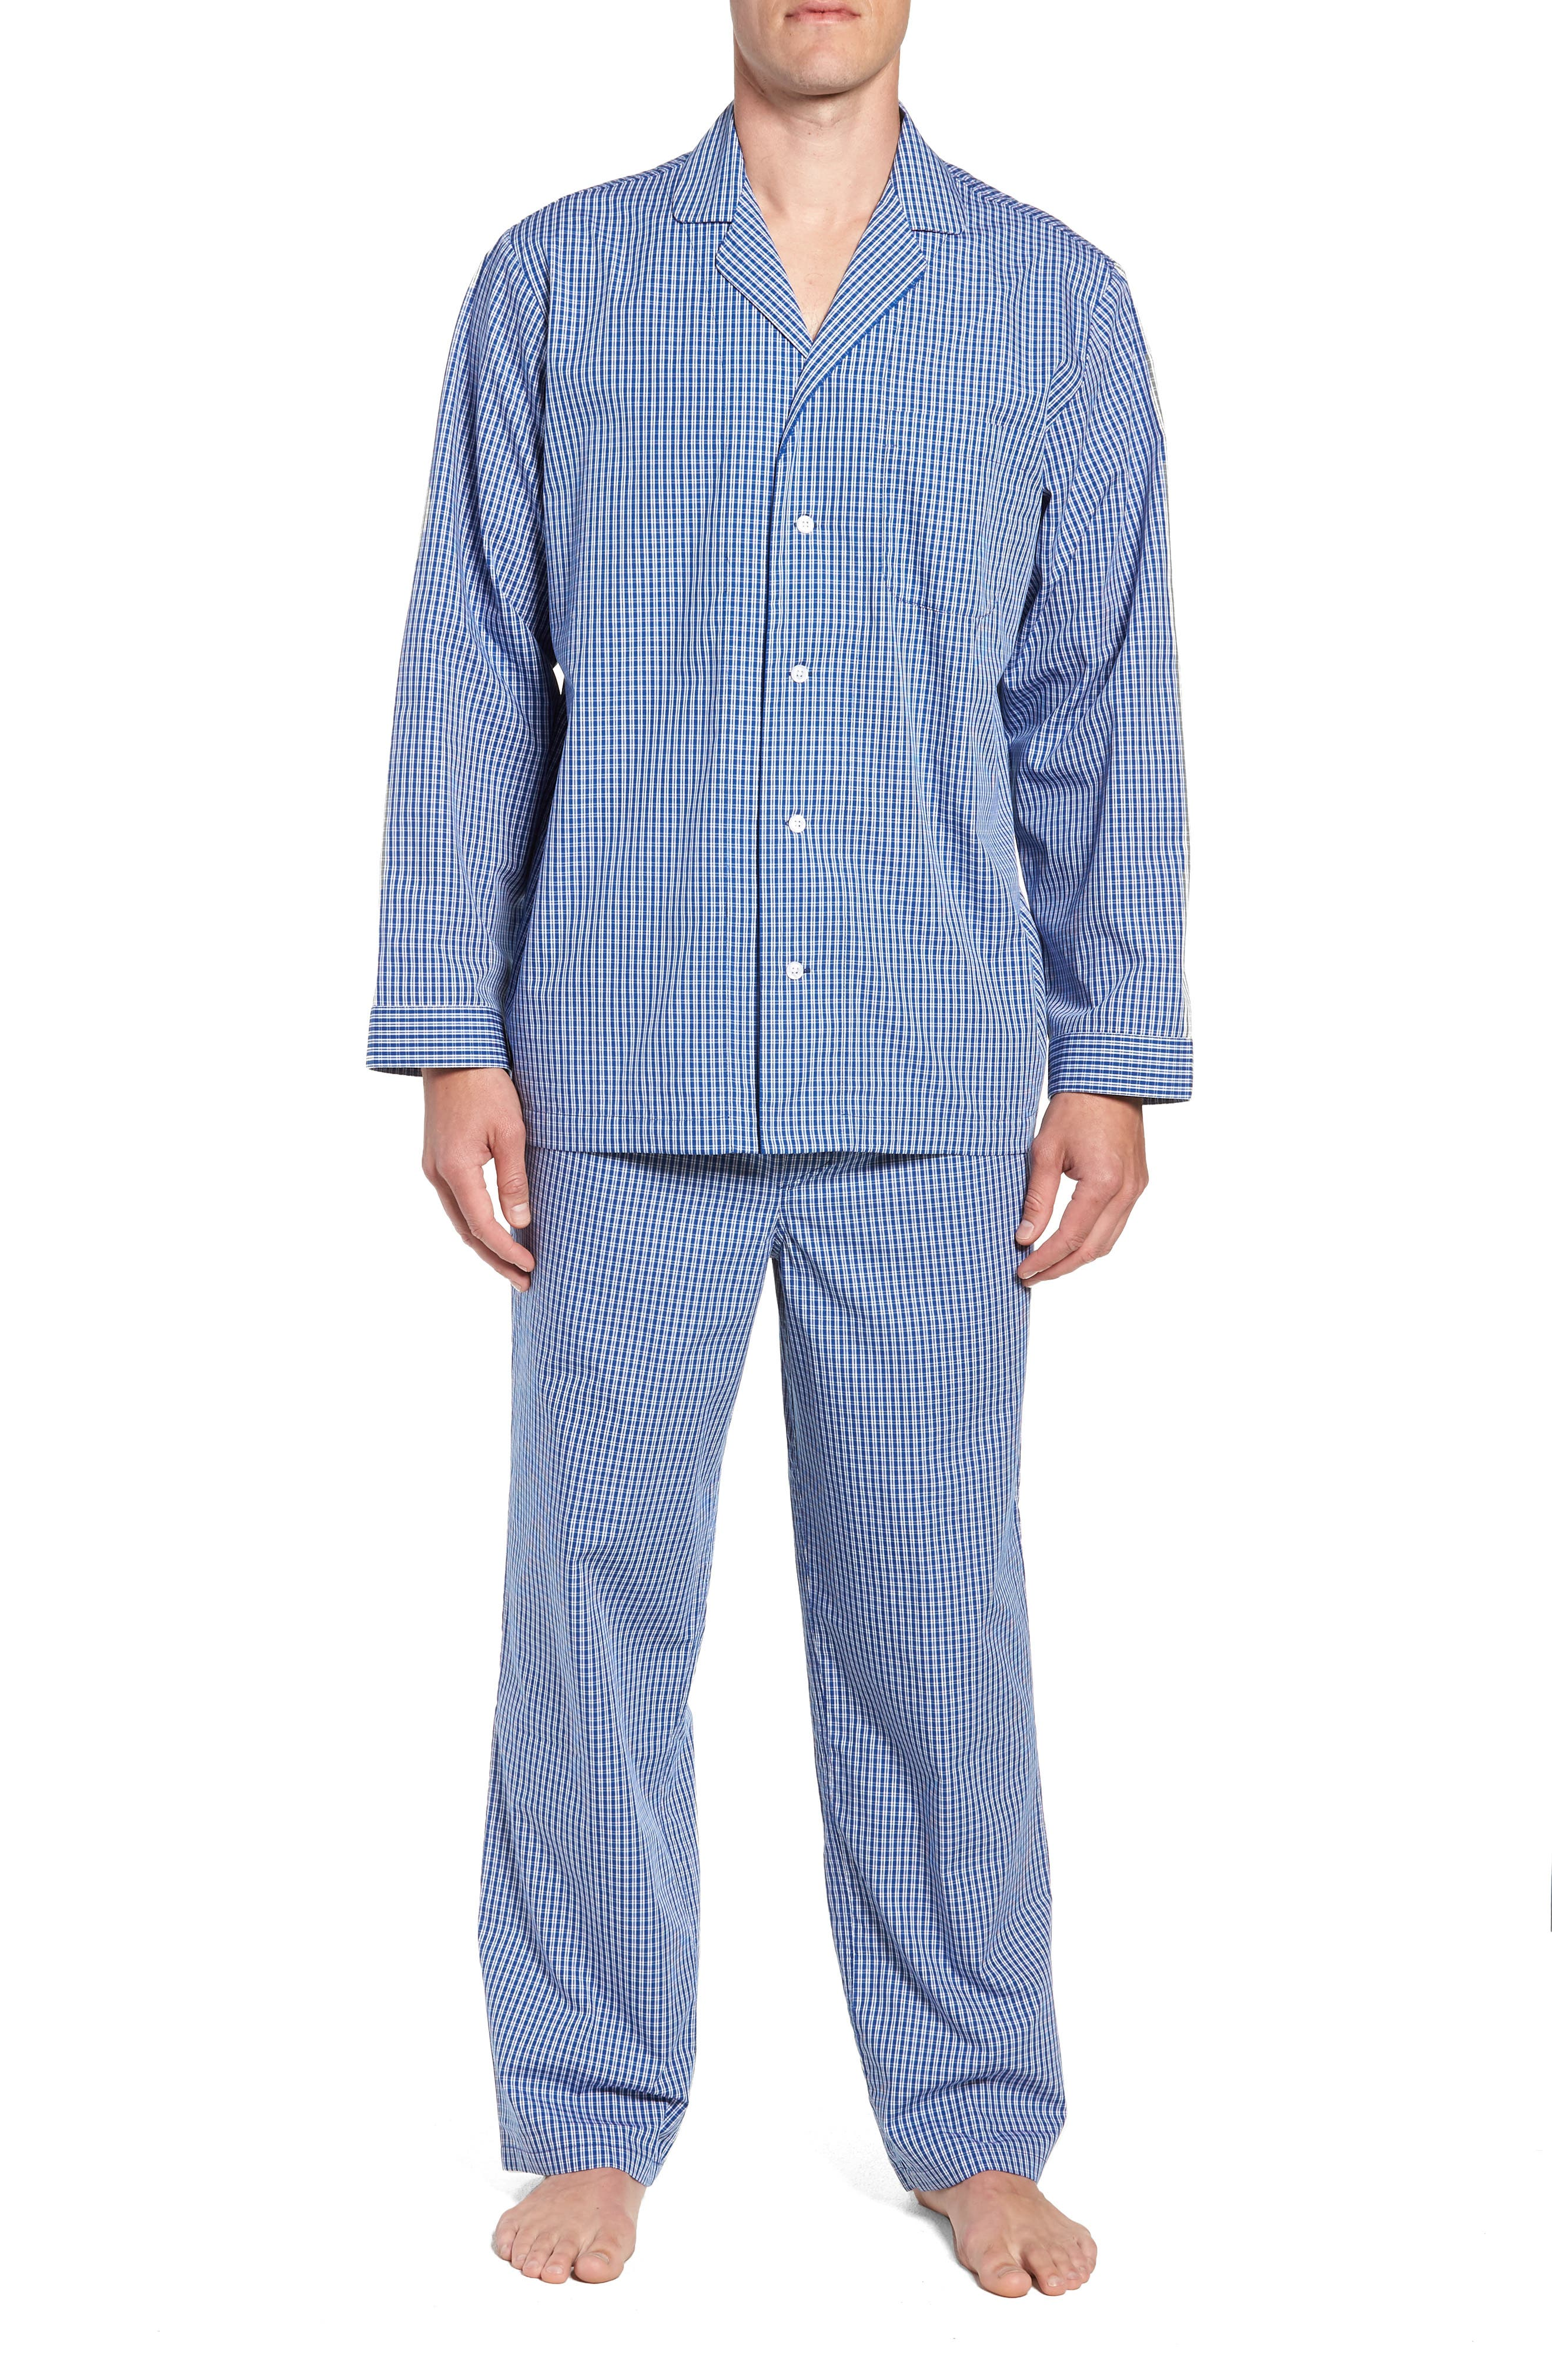 Poplin Pajama Set,                             Main thumbnail 1, color,                             BLUE DEEP MICRO CHECK